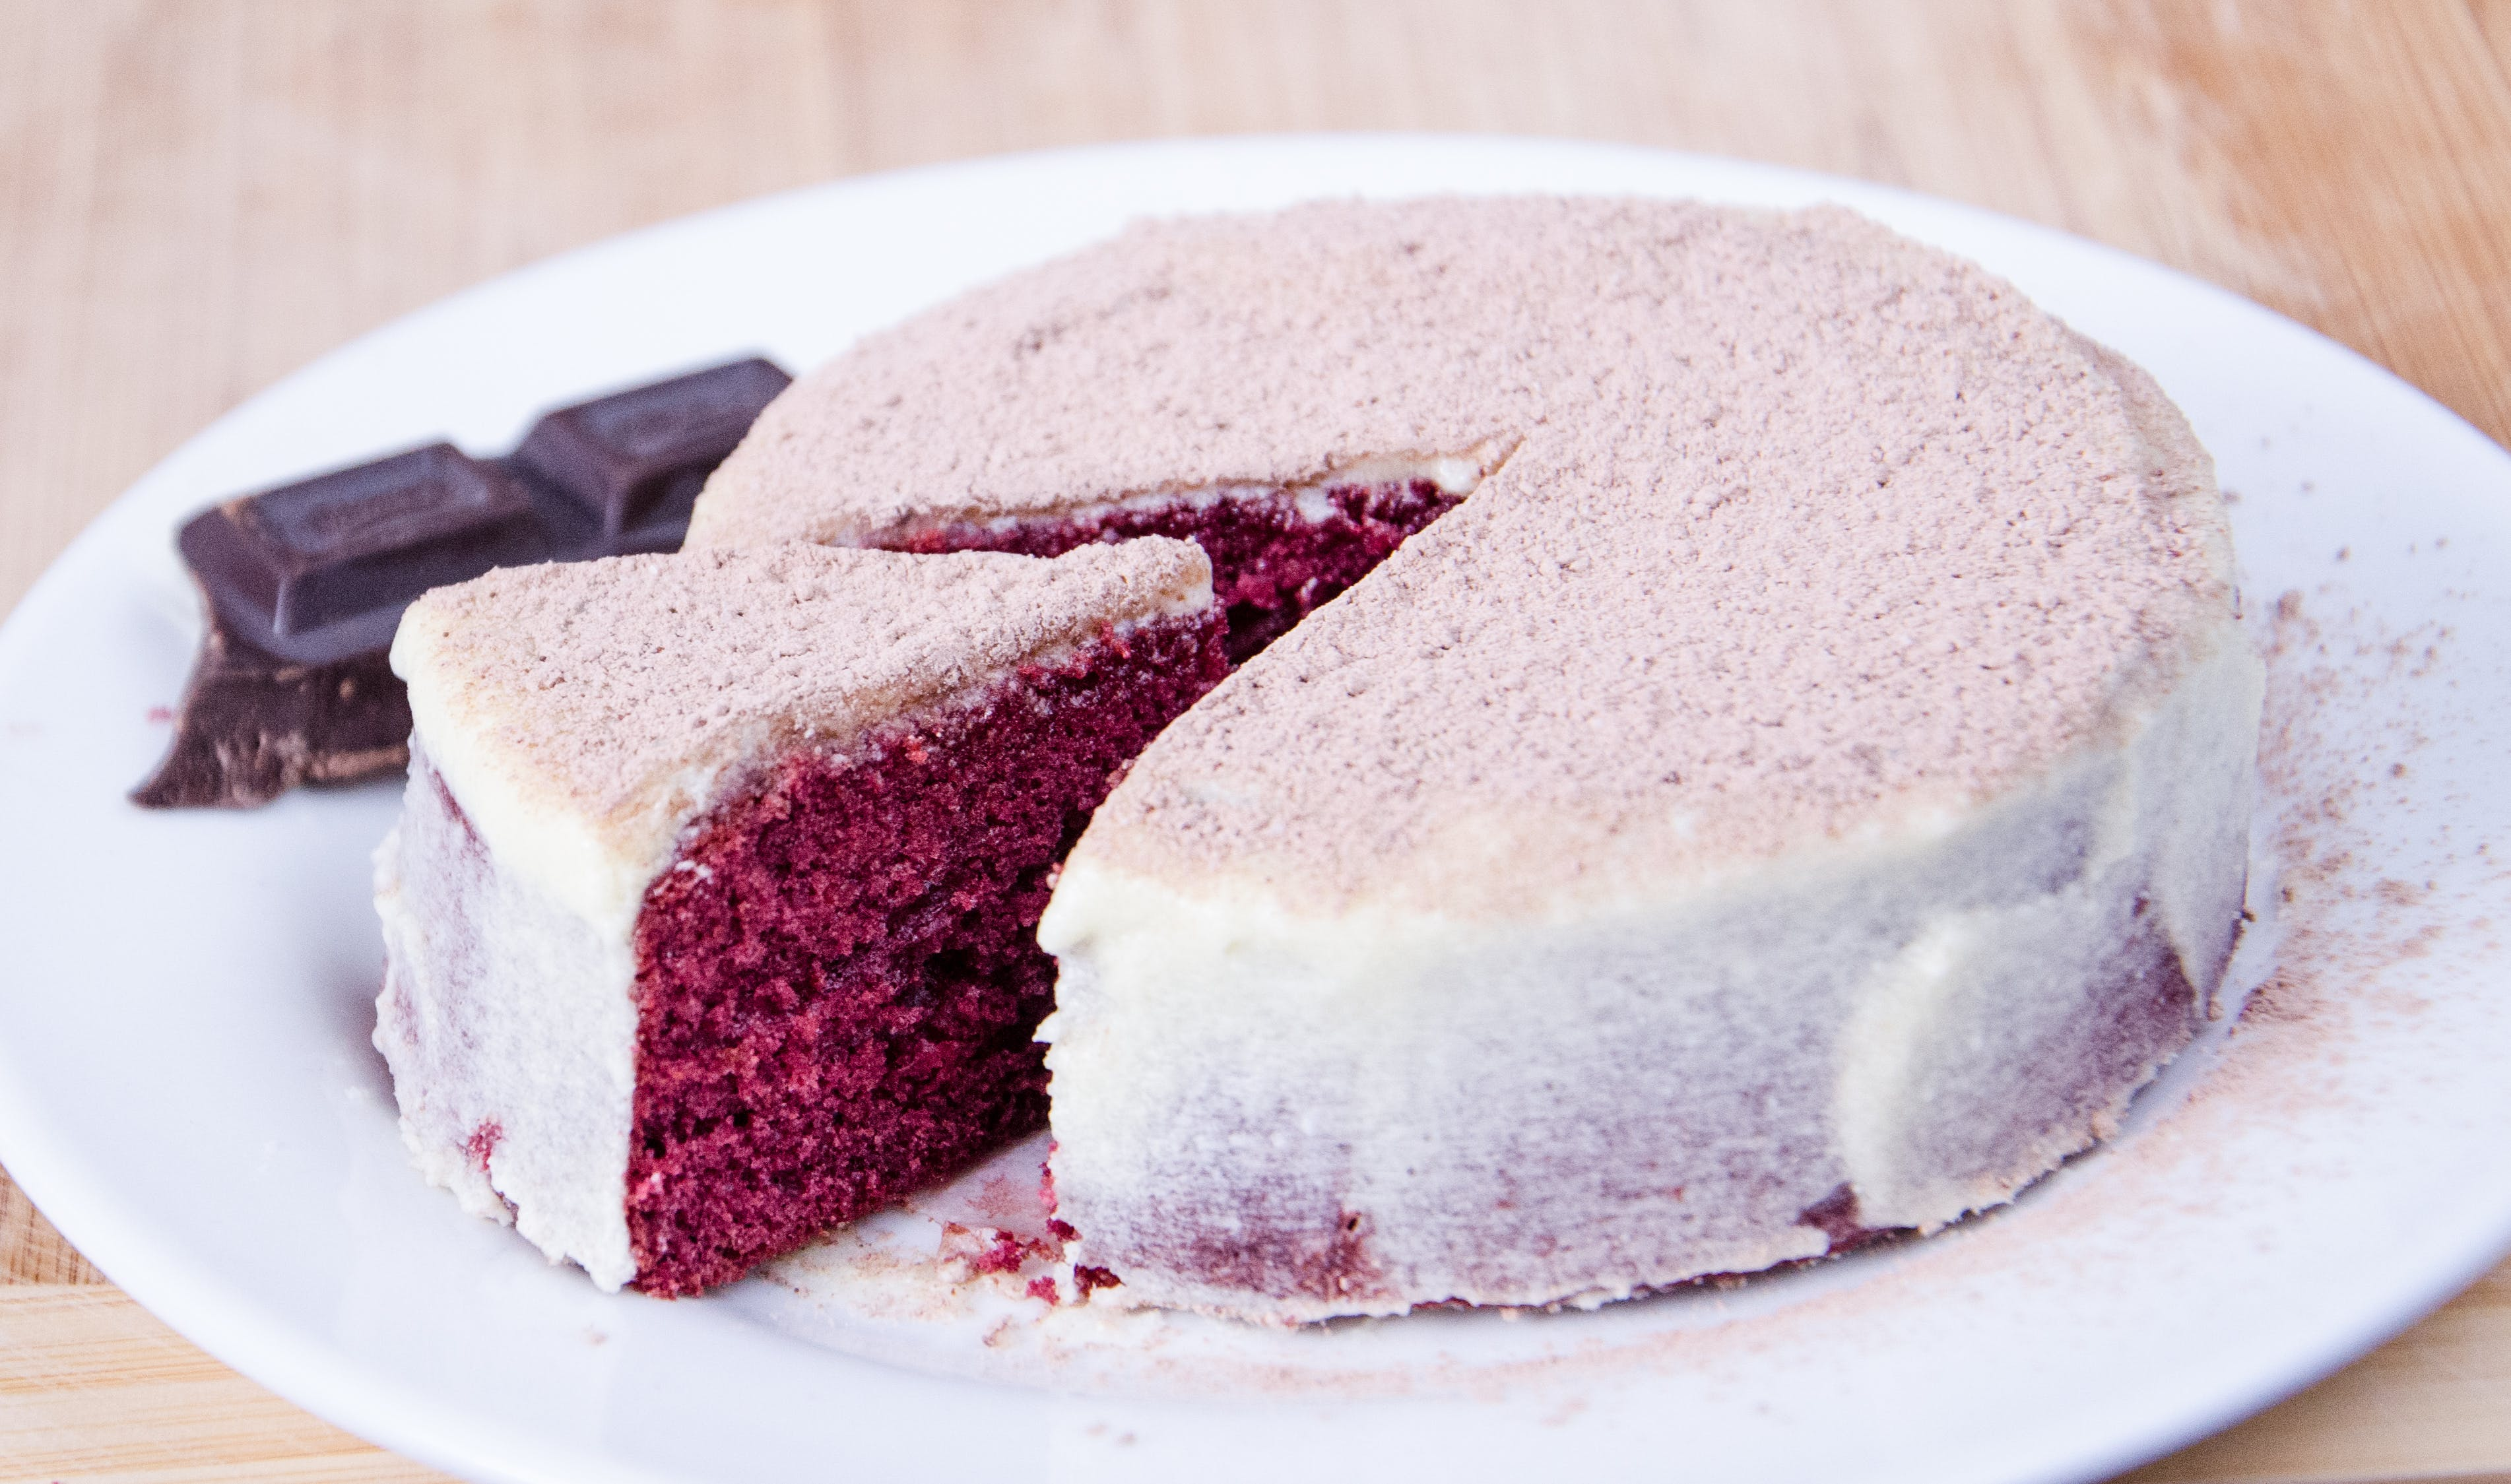 Close-up Photography of Sliced Cake